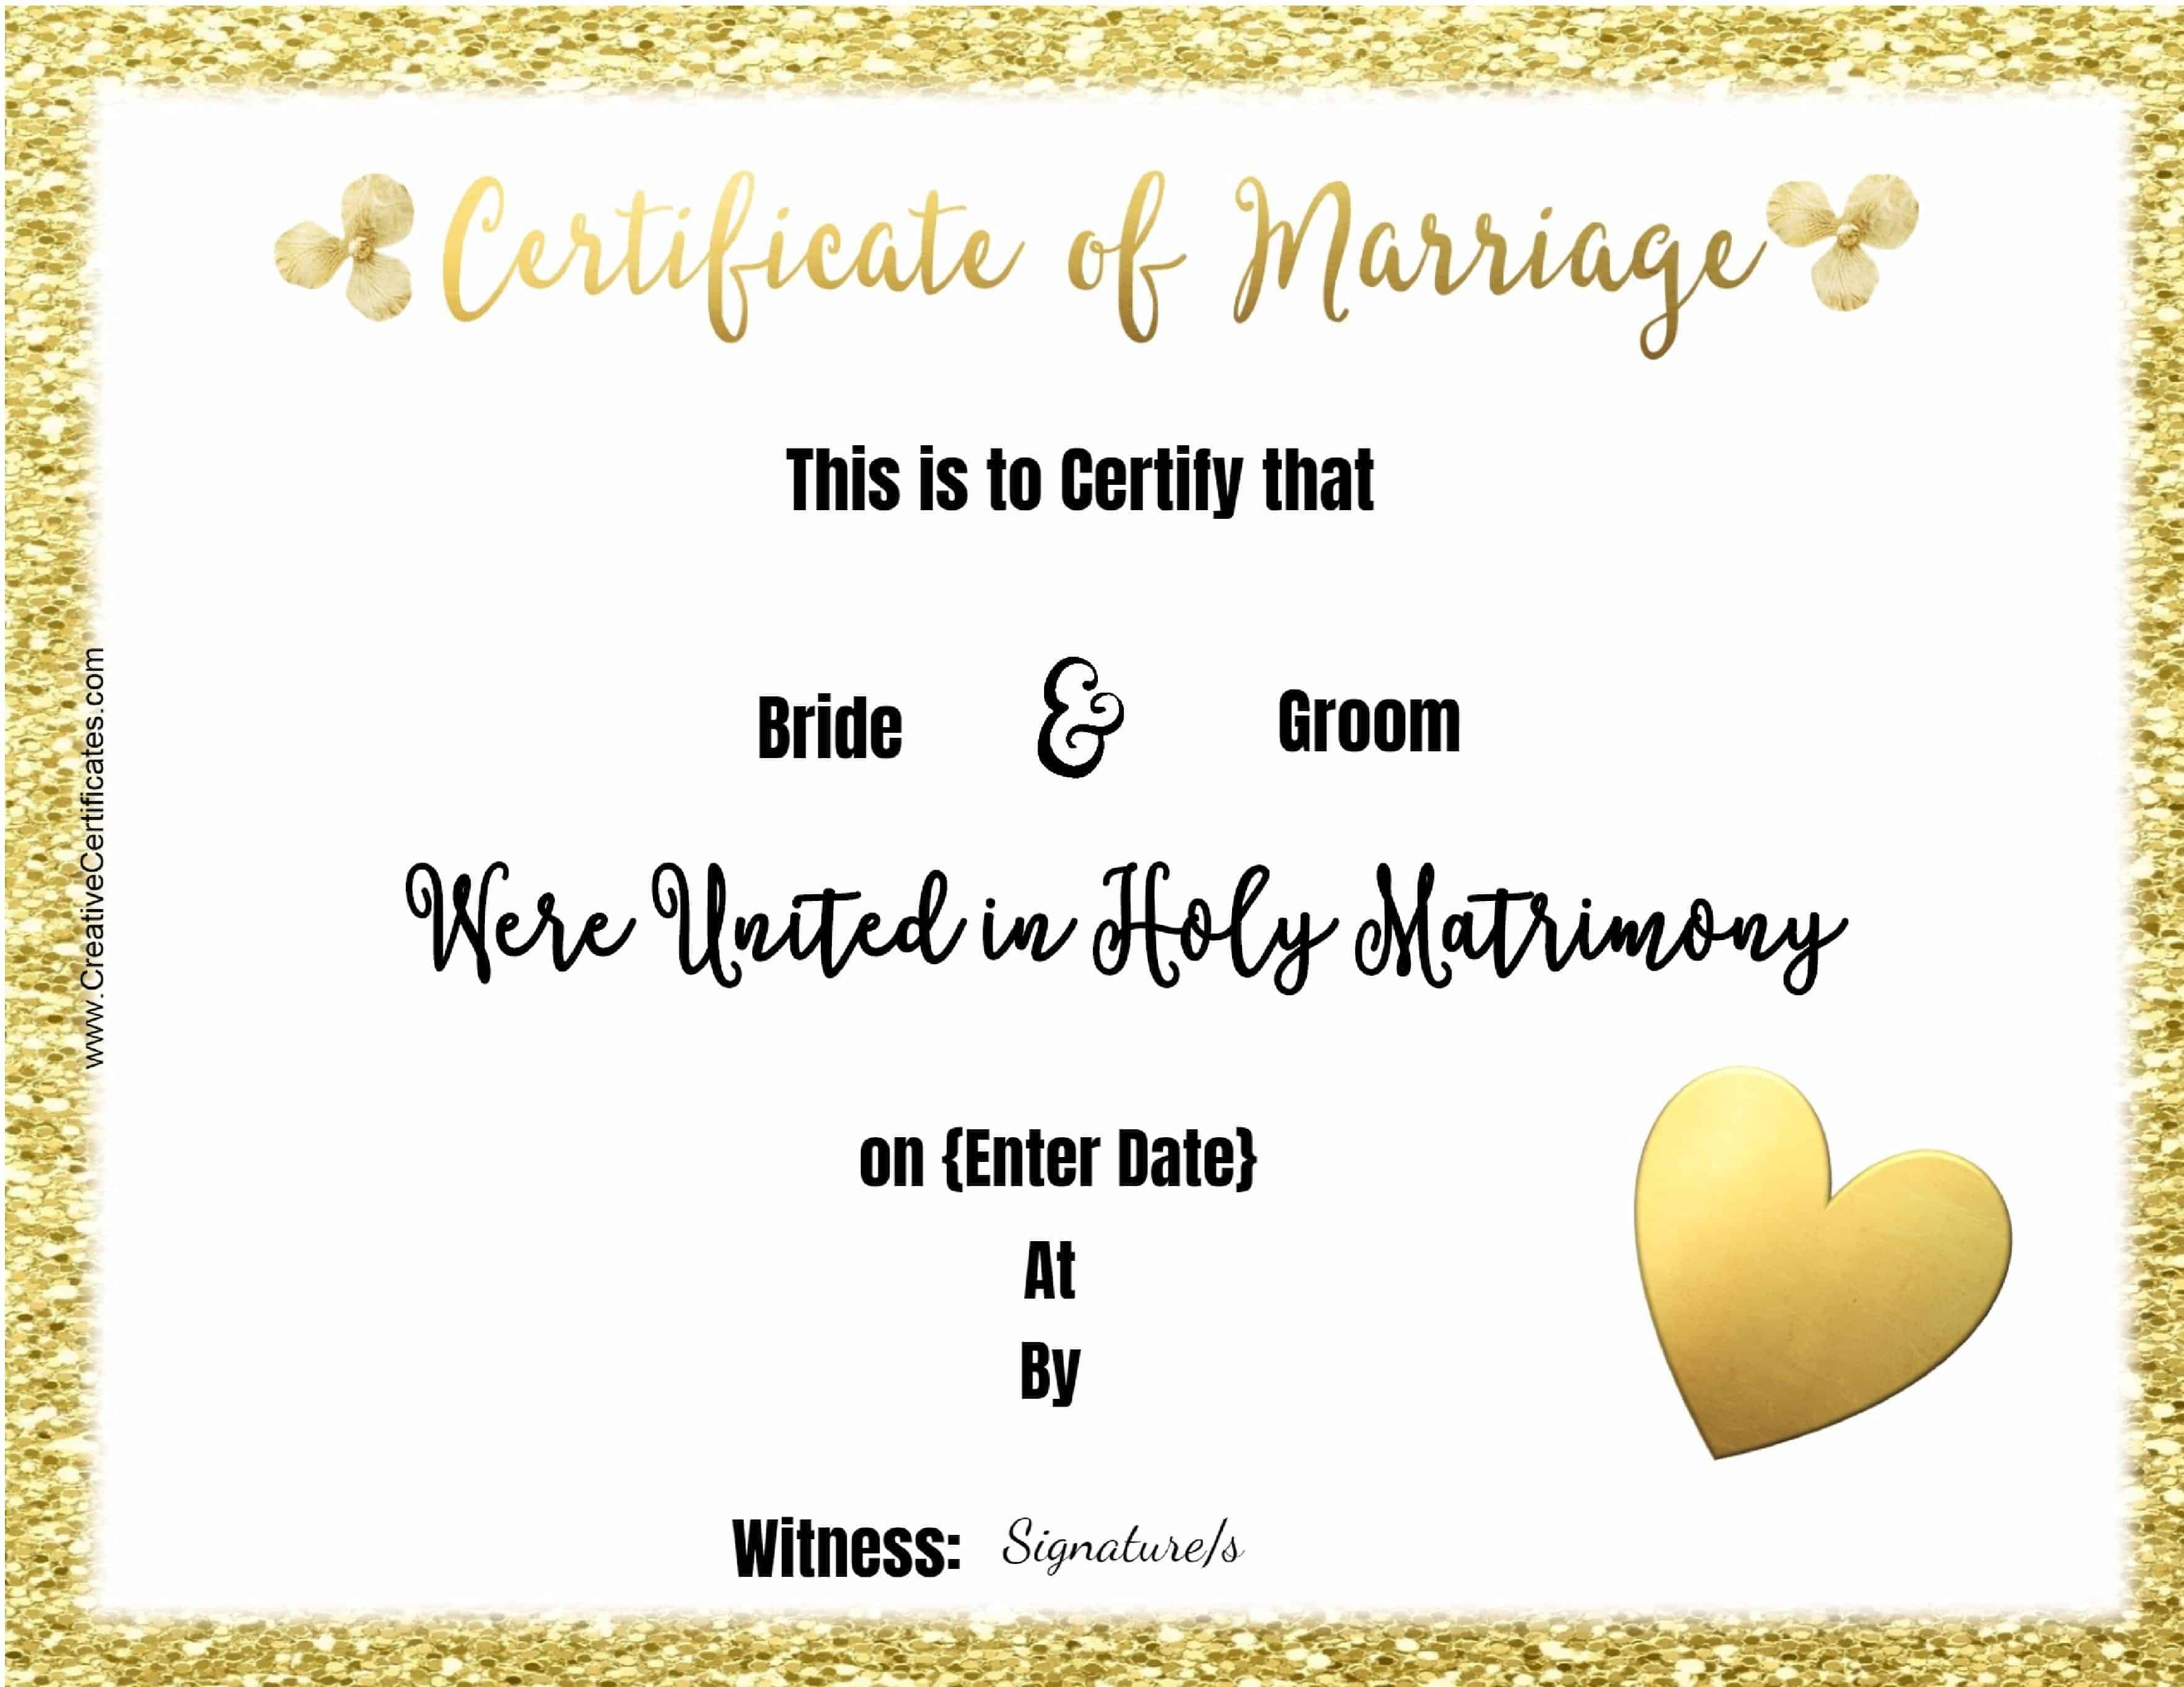 Free marriage certificate template customize online then print marriage certificates to print yadclub Image collections